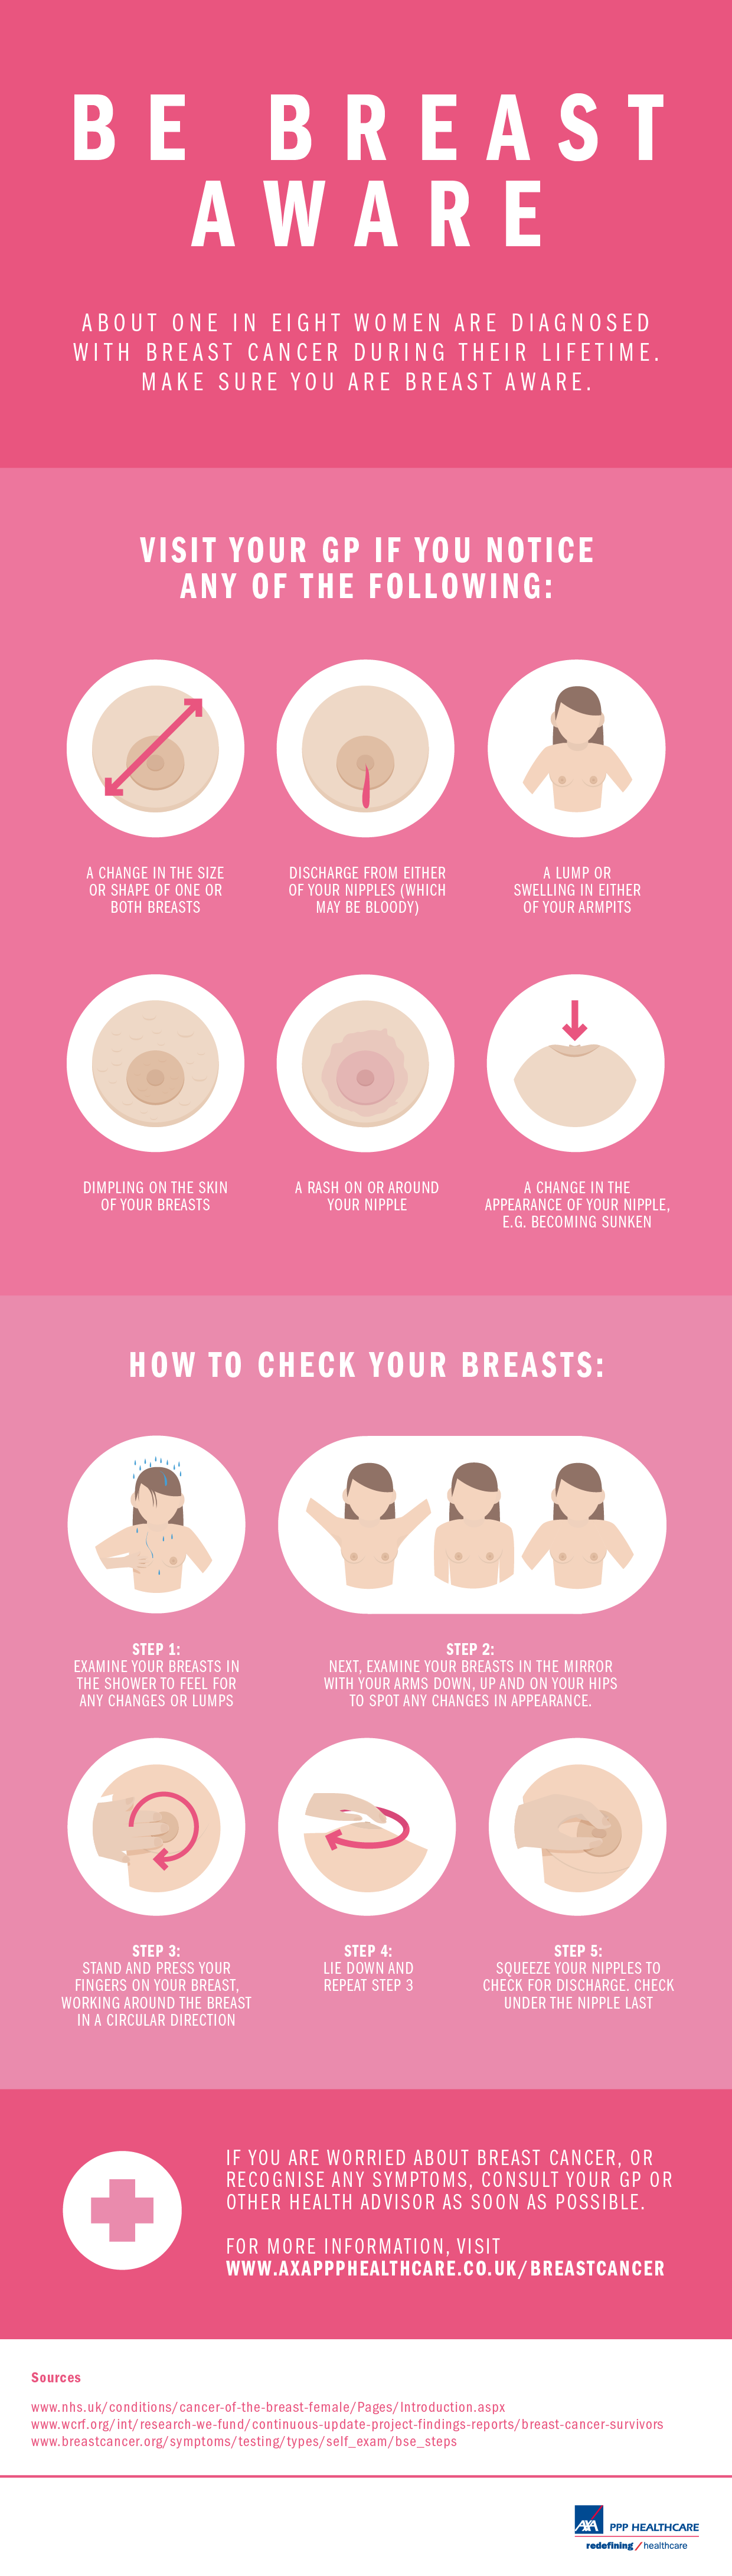 Breast cancer infographic_SMC_V001_symptoms and checking